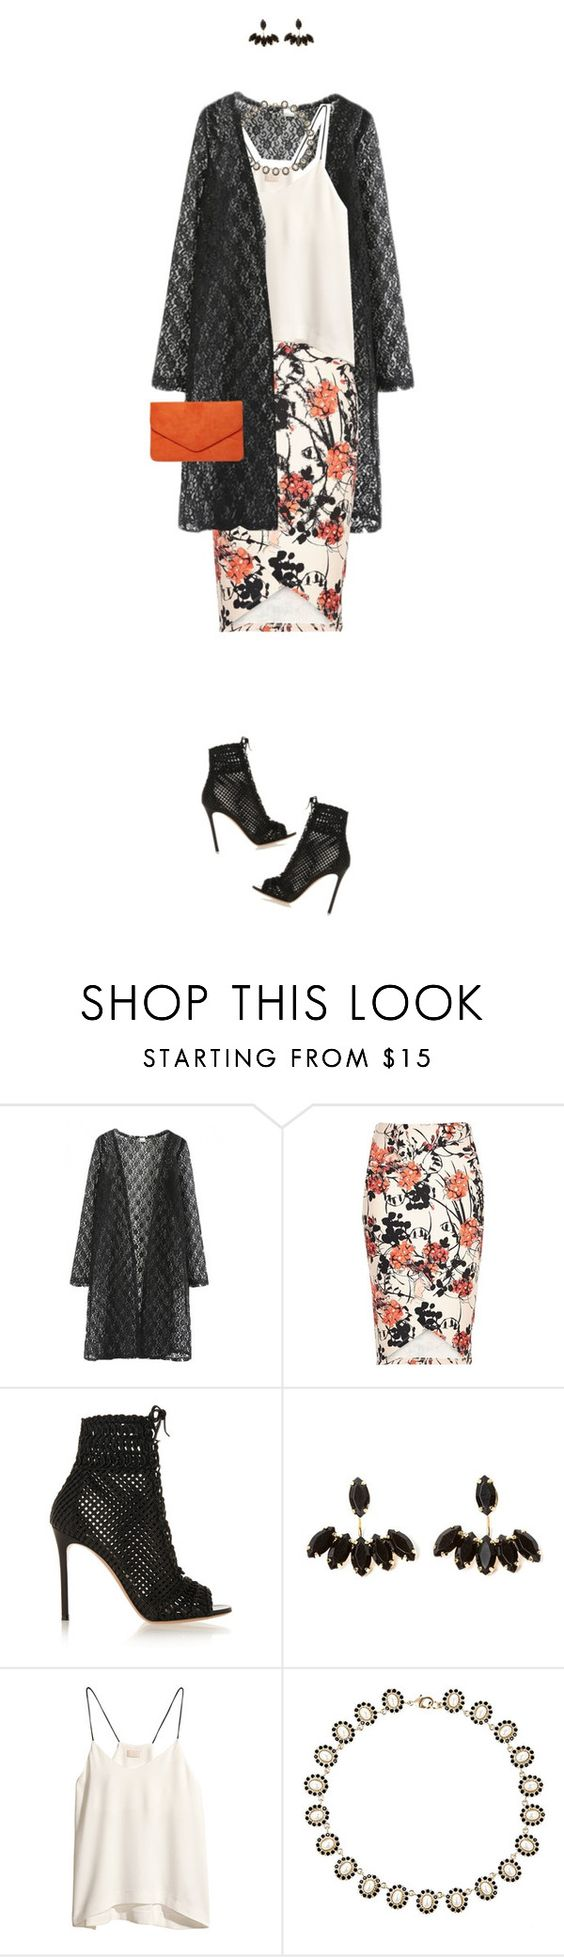 """""""Pack and Go: Milan"""" by xo-kallio ❤ liked on Polyvore featuring River Island, Gianvito Rossi, H&M, Givenchy, Dorothy Perkins, fashionWeek, Packandgo and spring2016"""